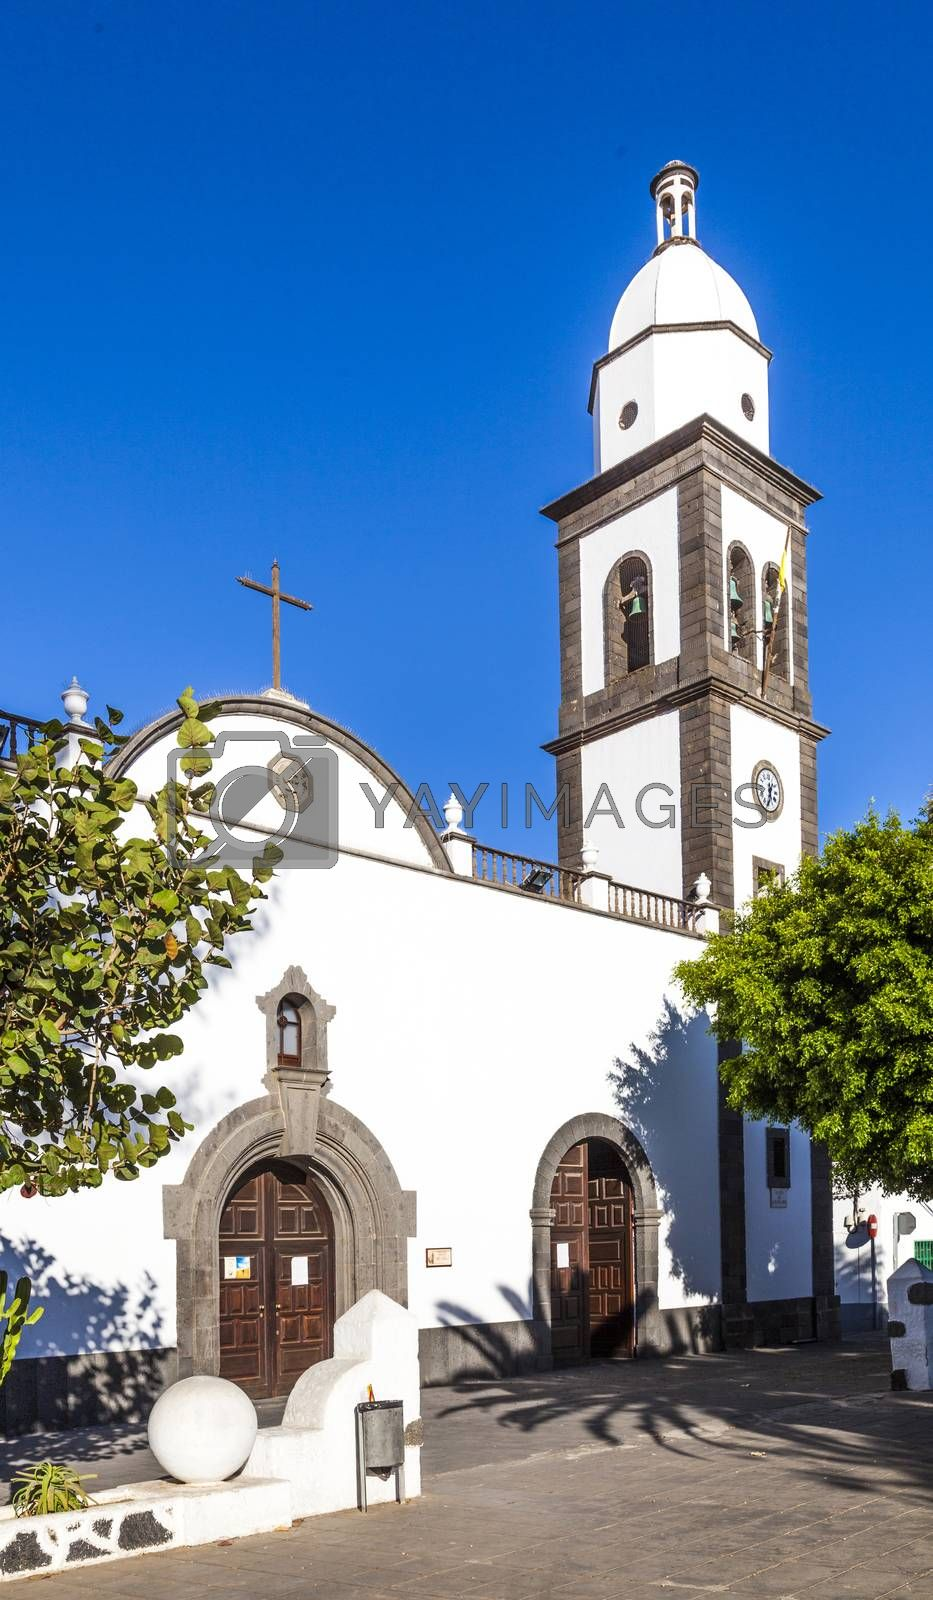 The beautiful church of San Gines in Arrecife with its white-washed exterior and attractive bell tower